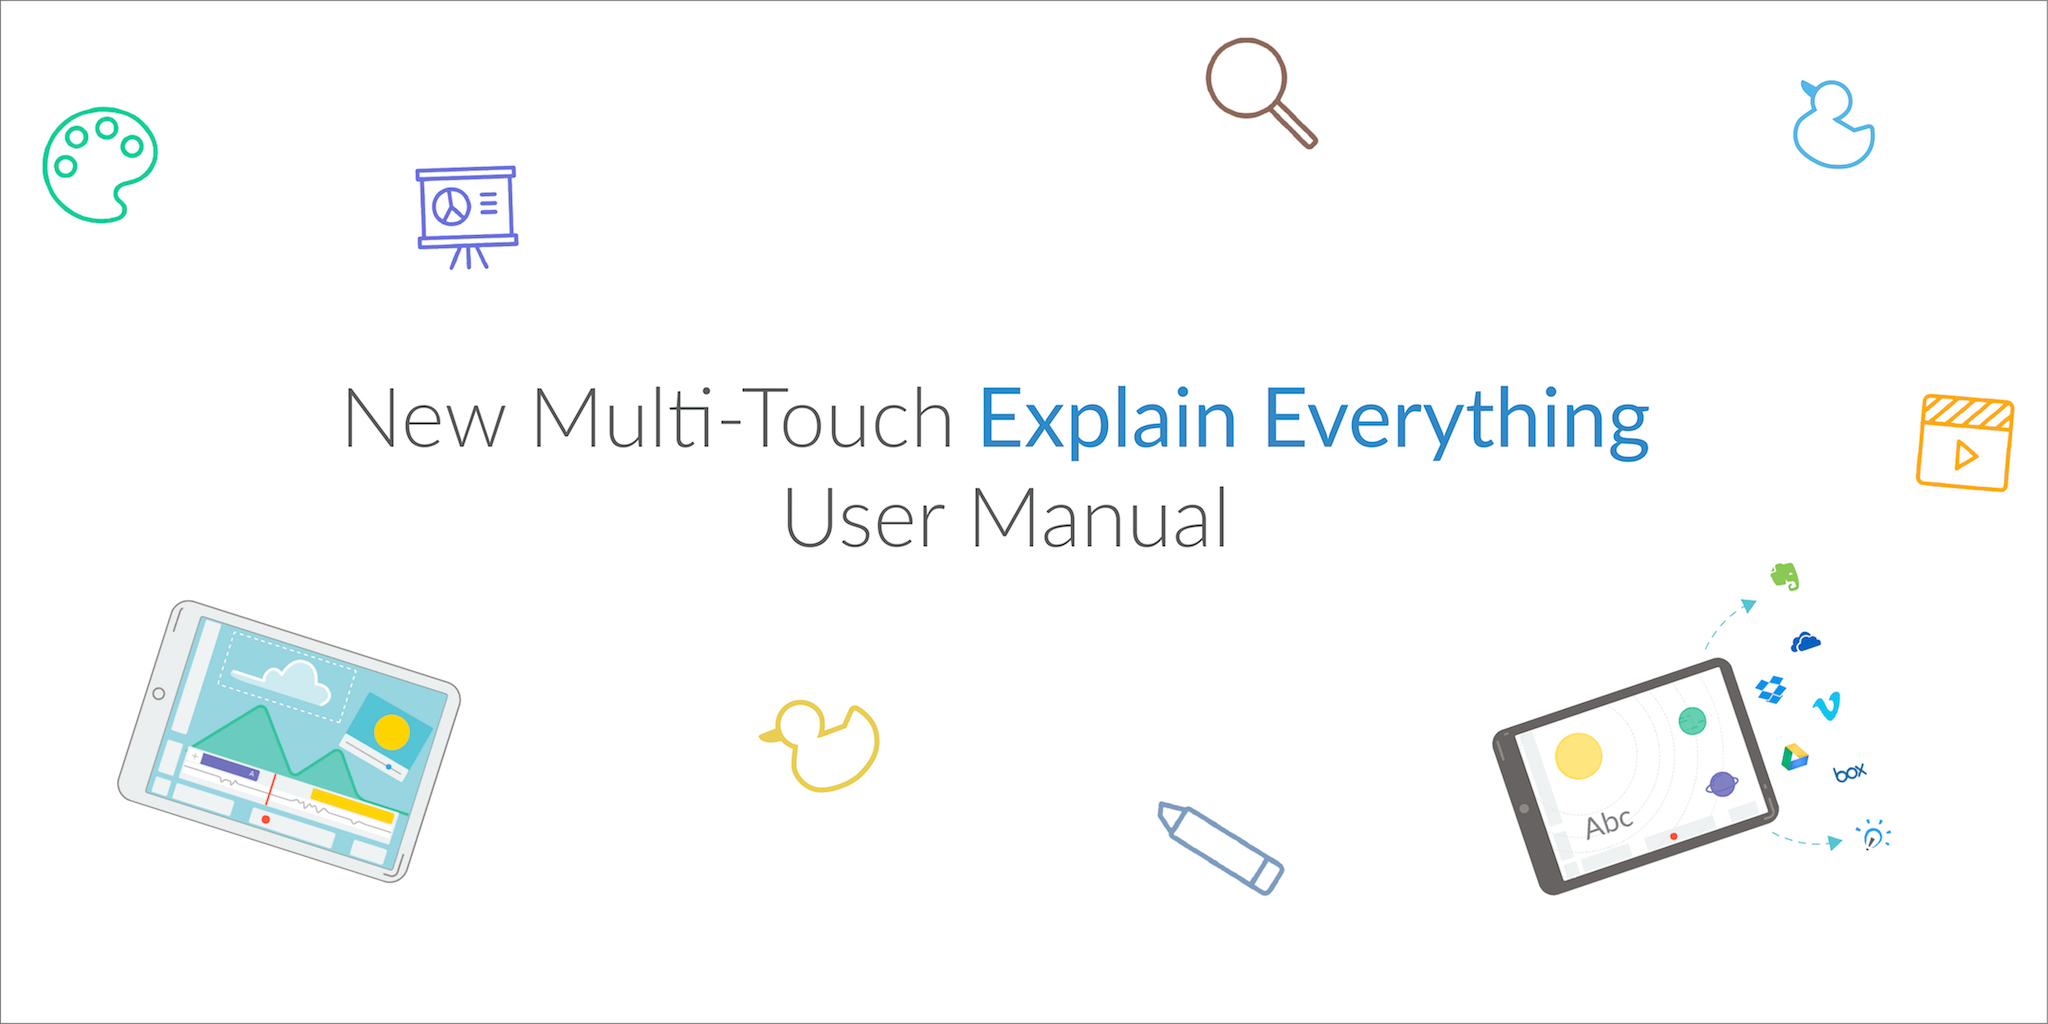 Multitouch iBook about Explain Everything